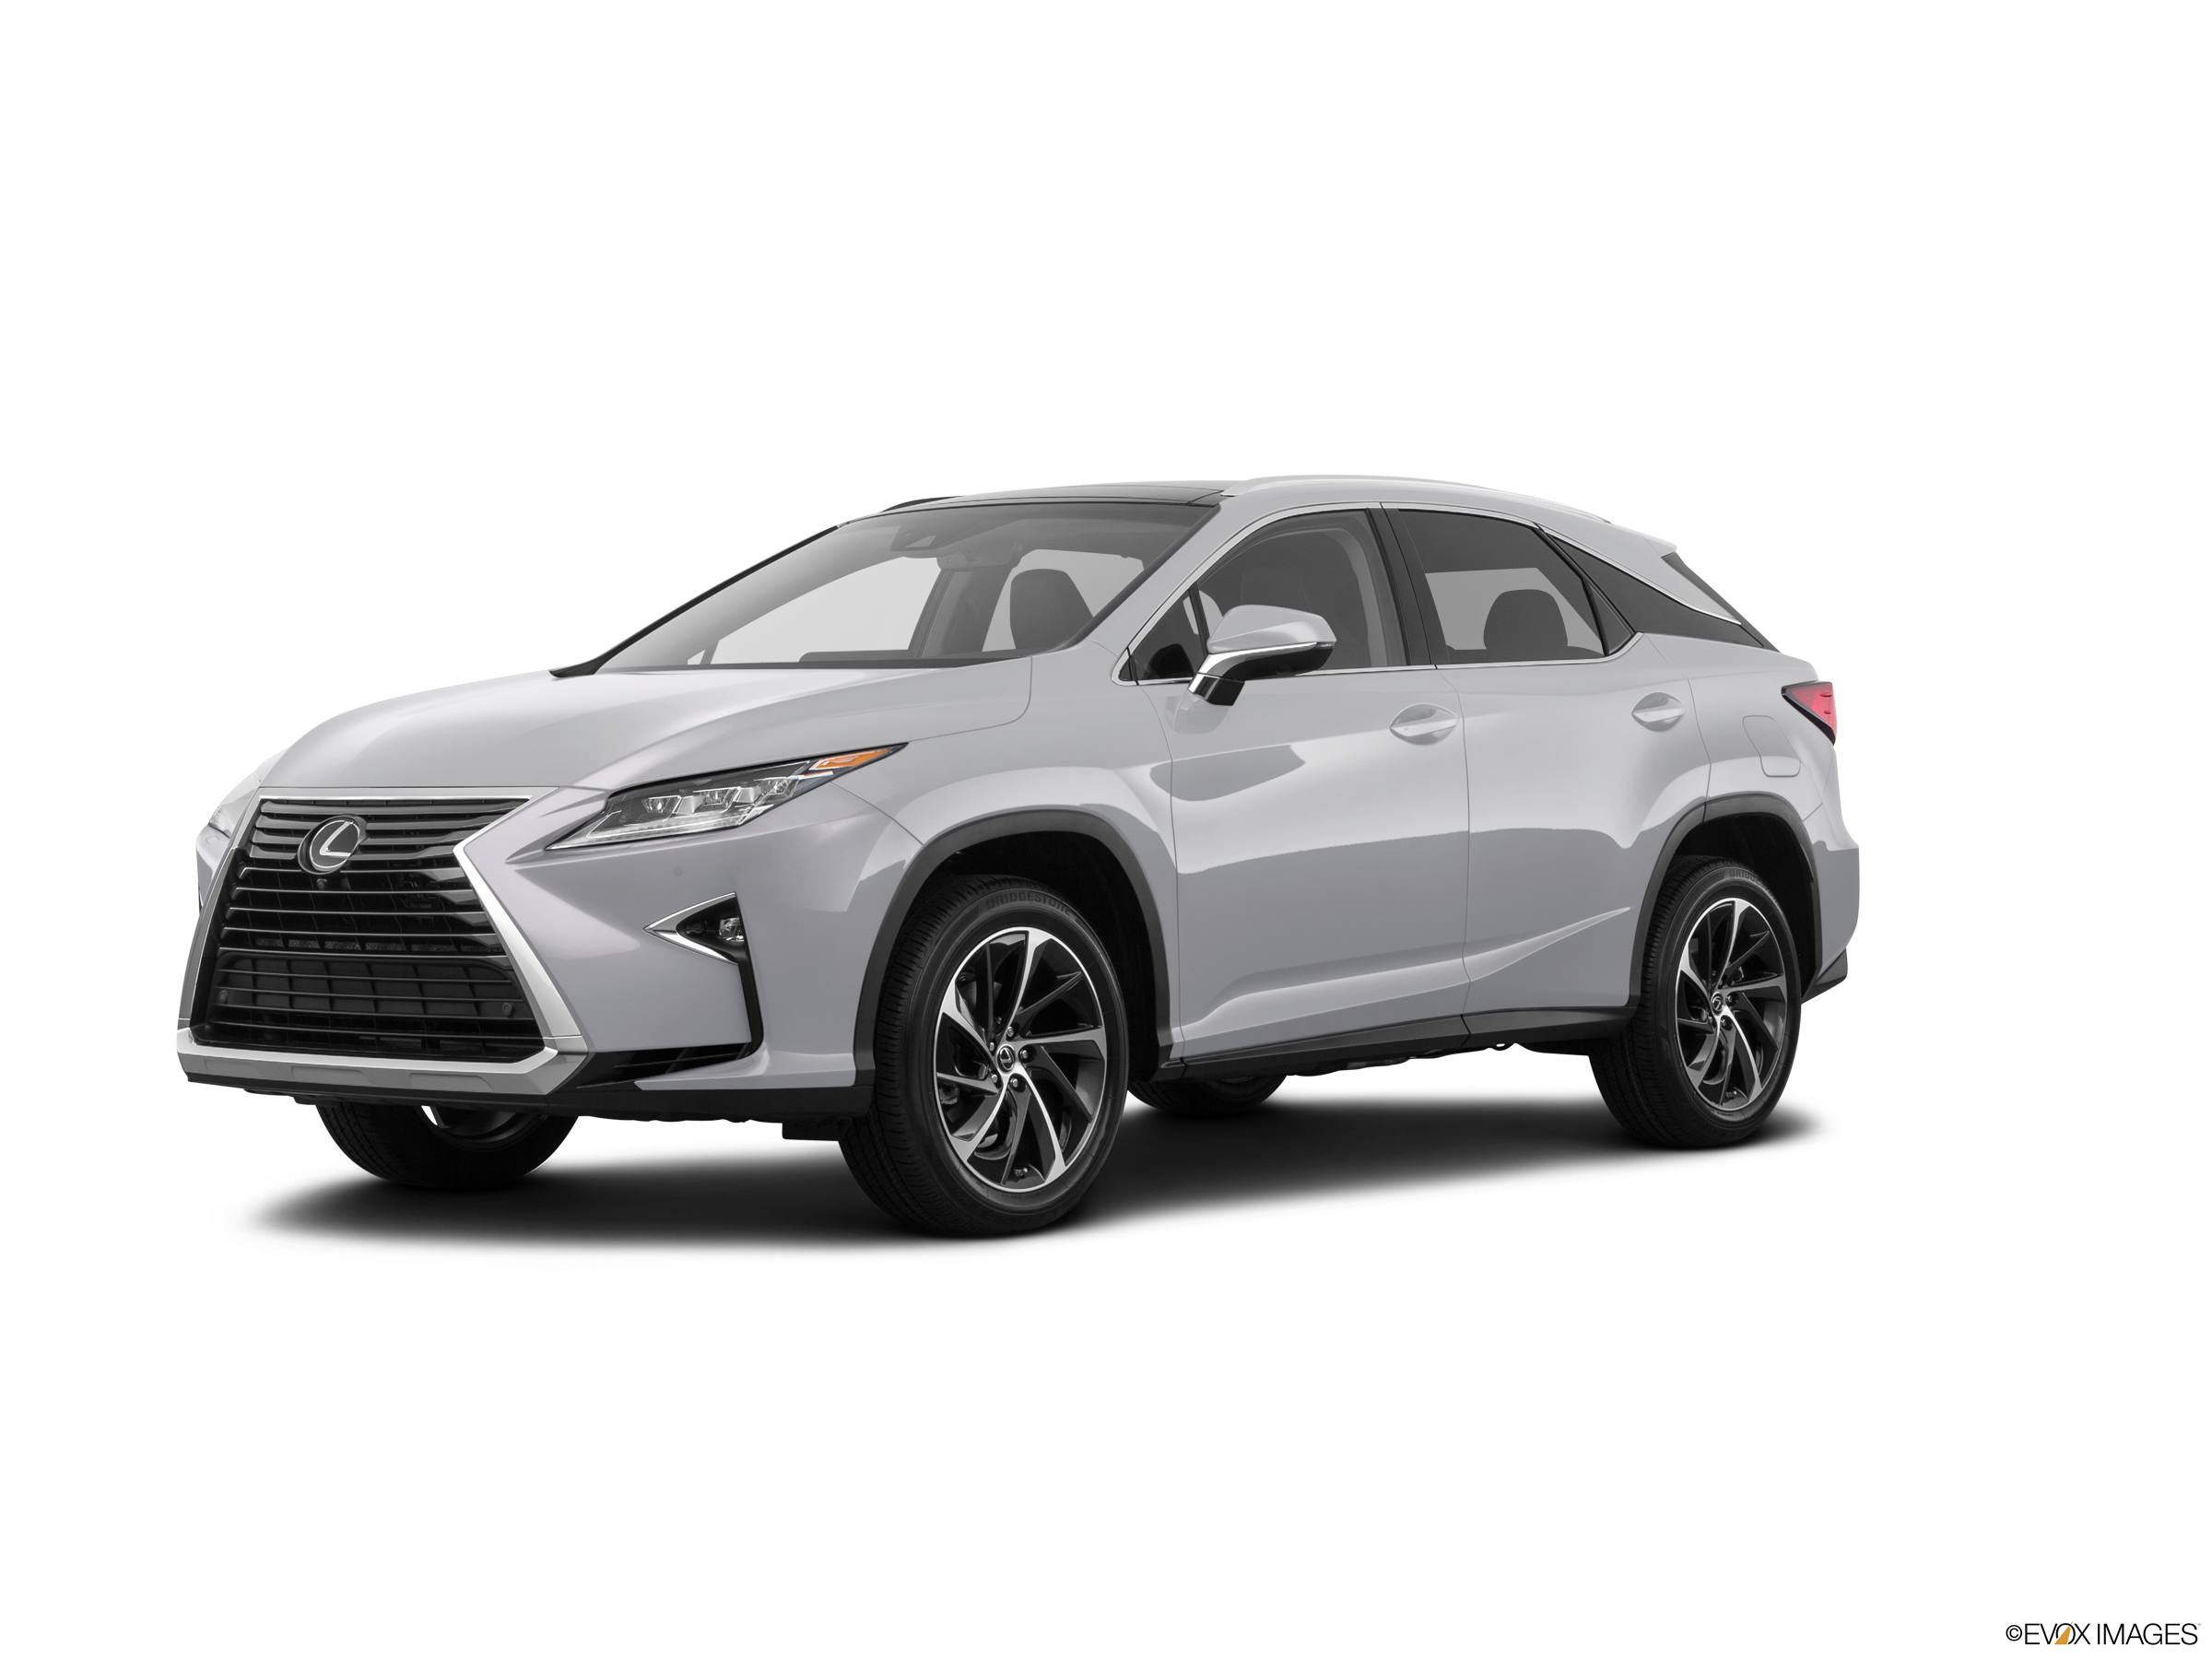 25 Best-Selling SUVs of 2018 - Lexus RX